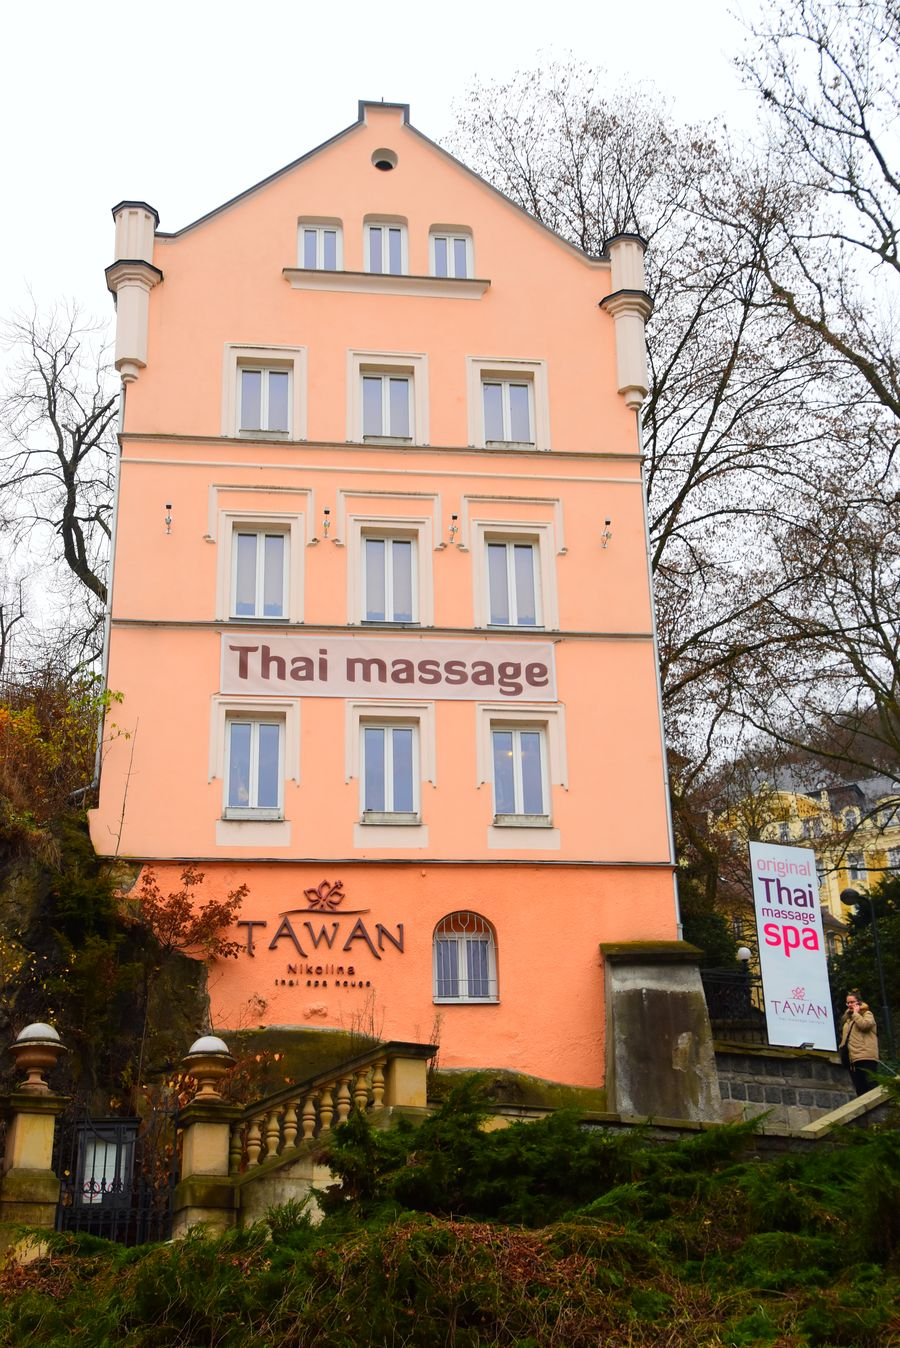 things-to-do-in-karlovy-vary-czech-republic-tawan-nikolina-thai-spa-house-262